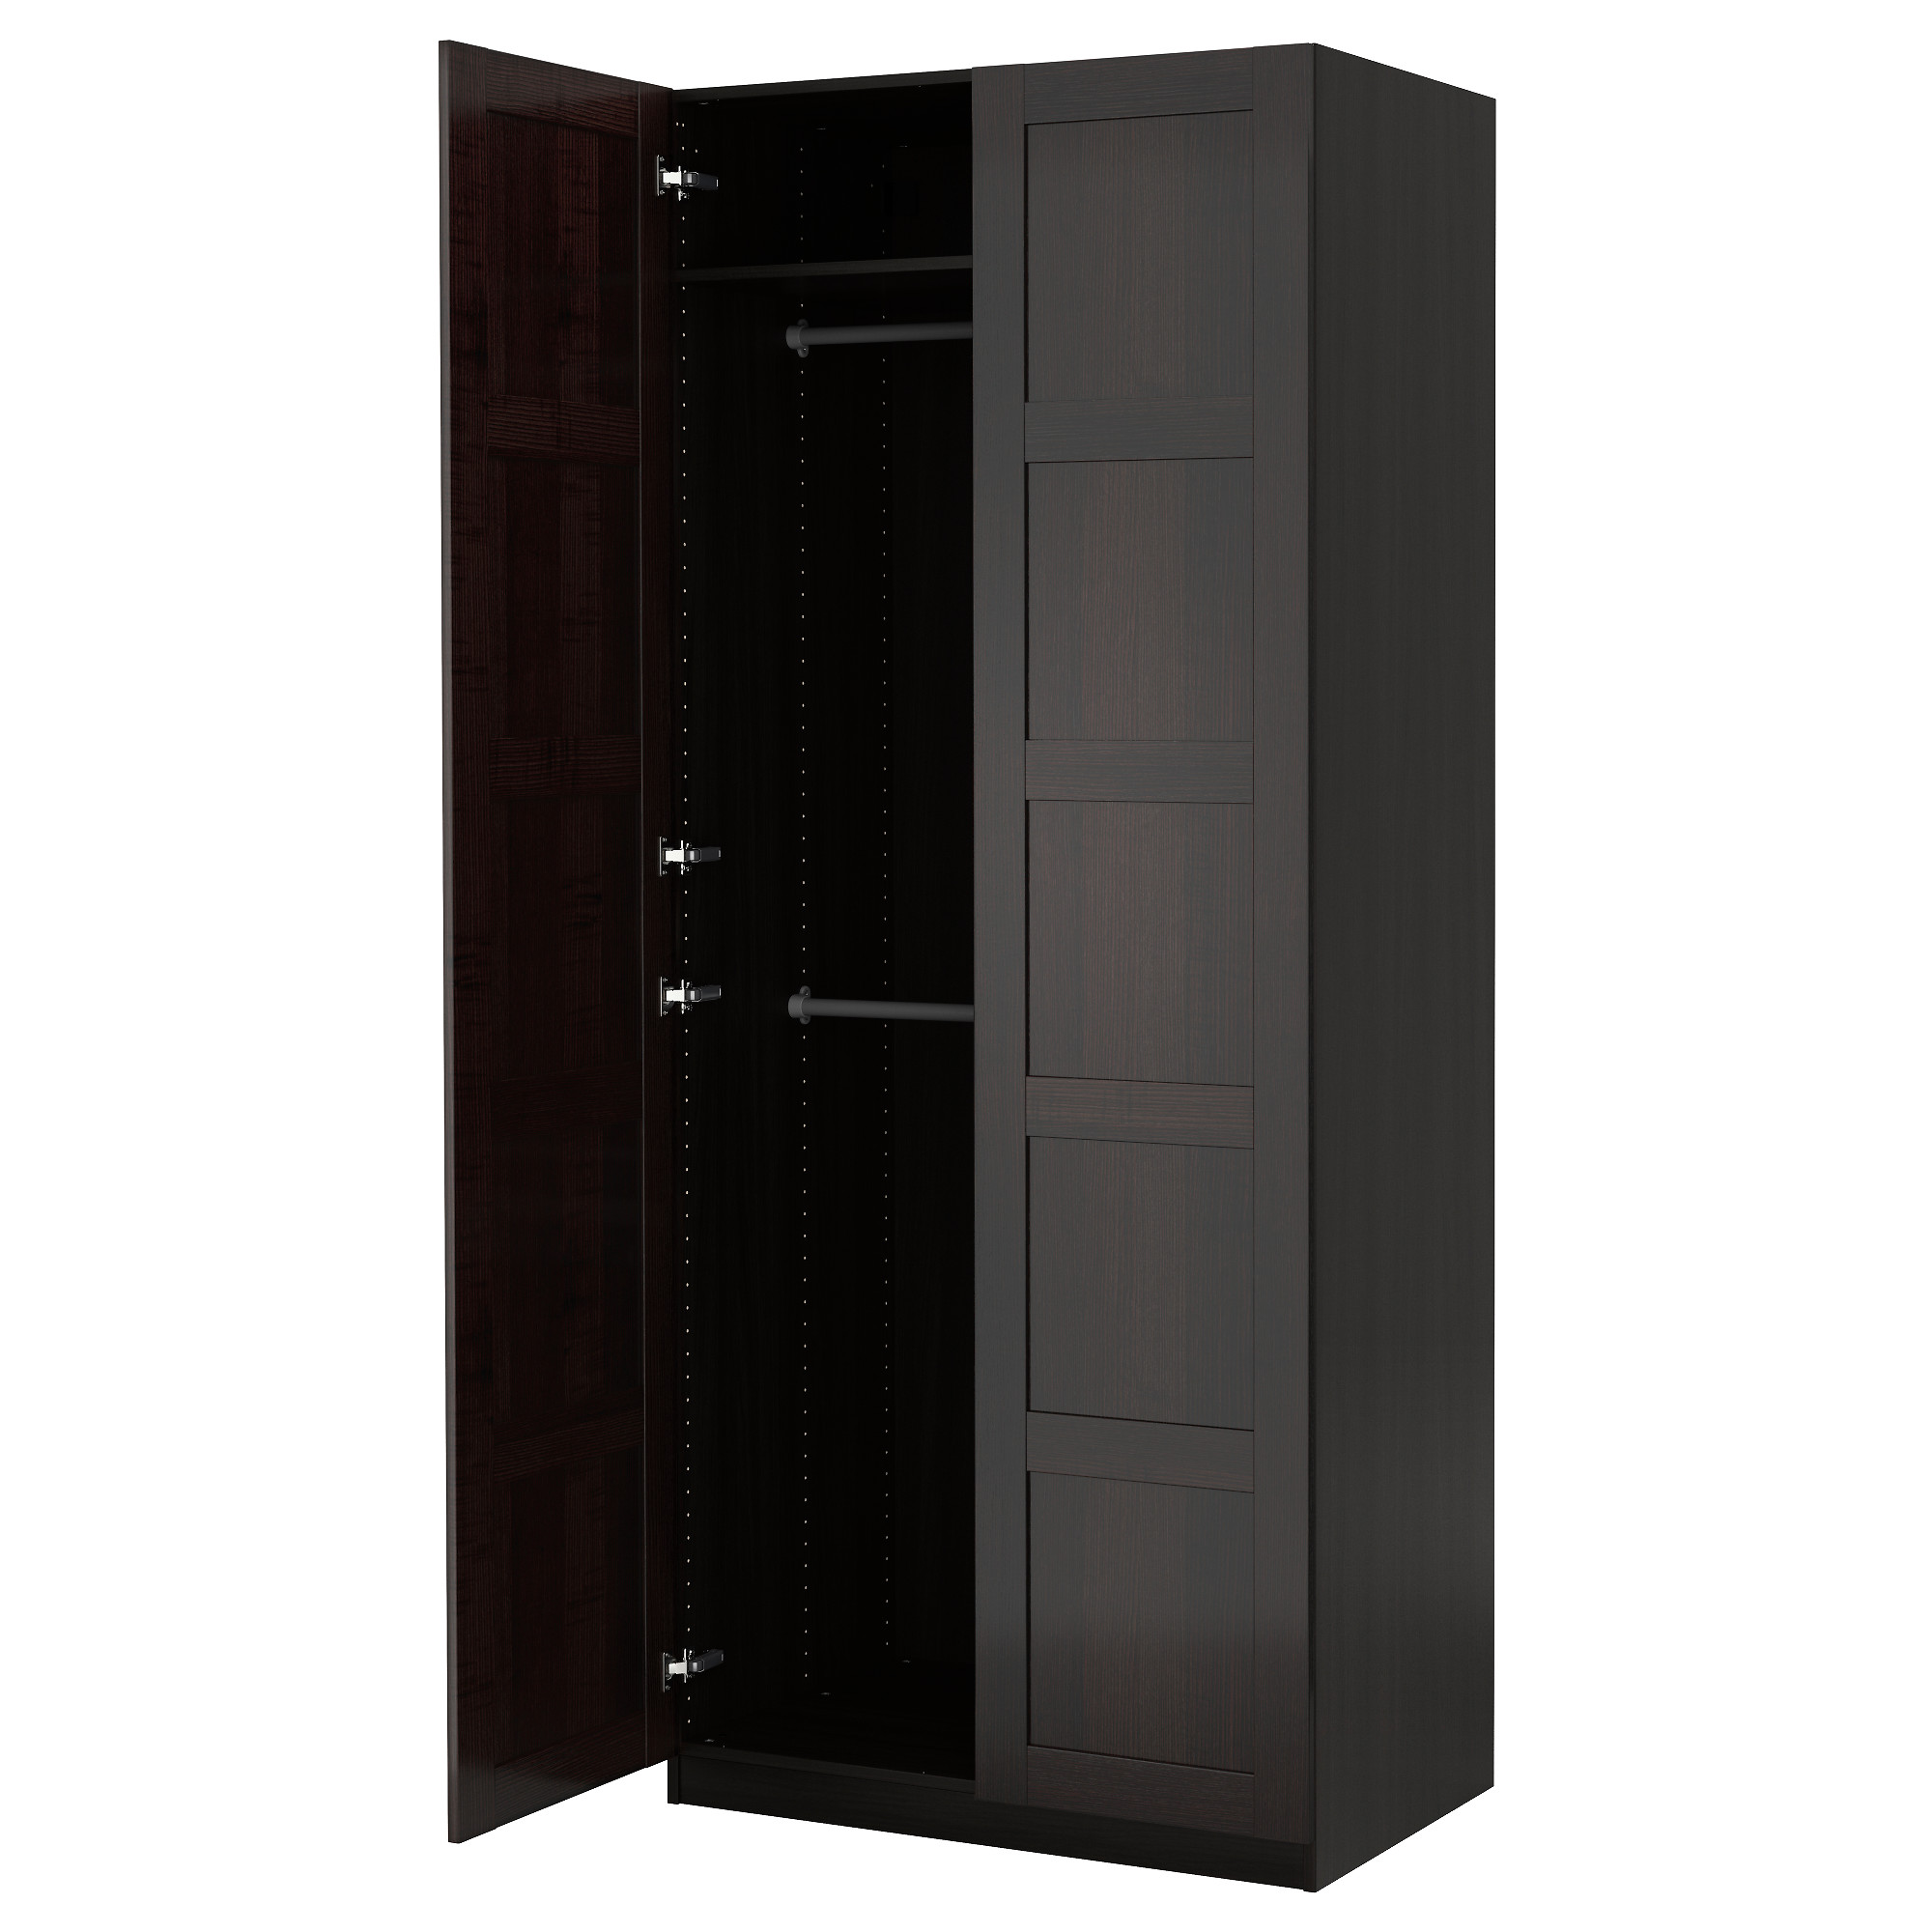 freestanding closet system with doors  Winda 7 Furniture